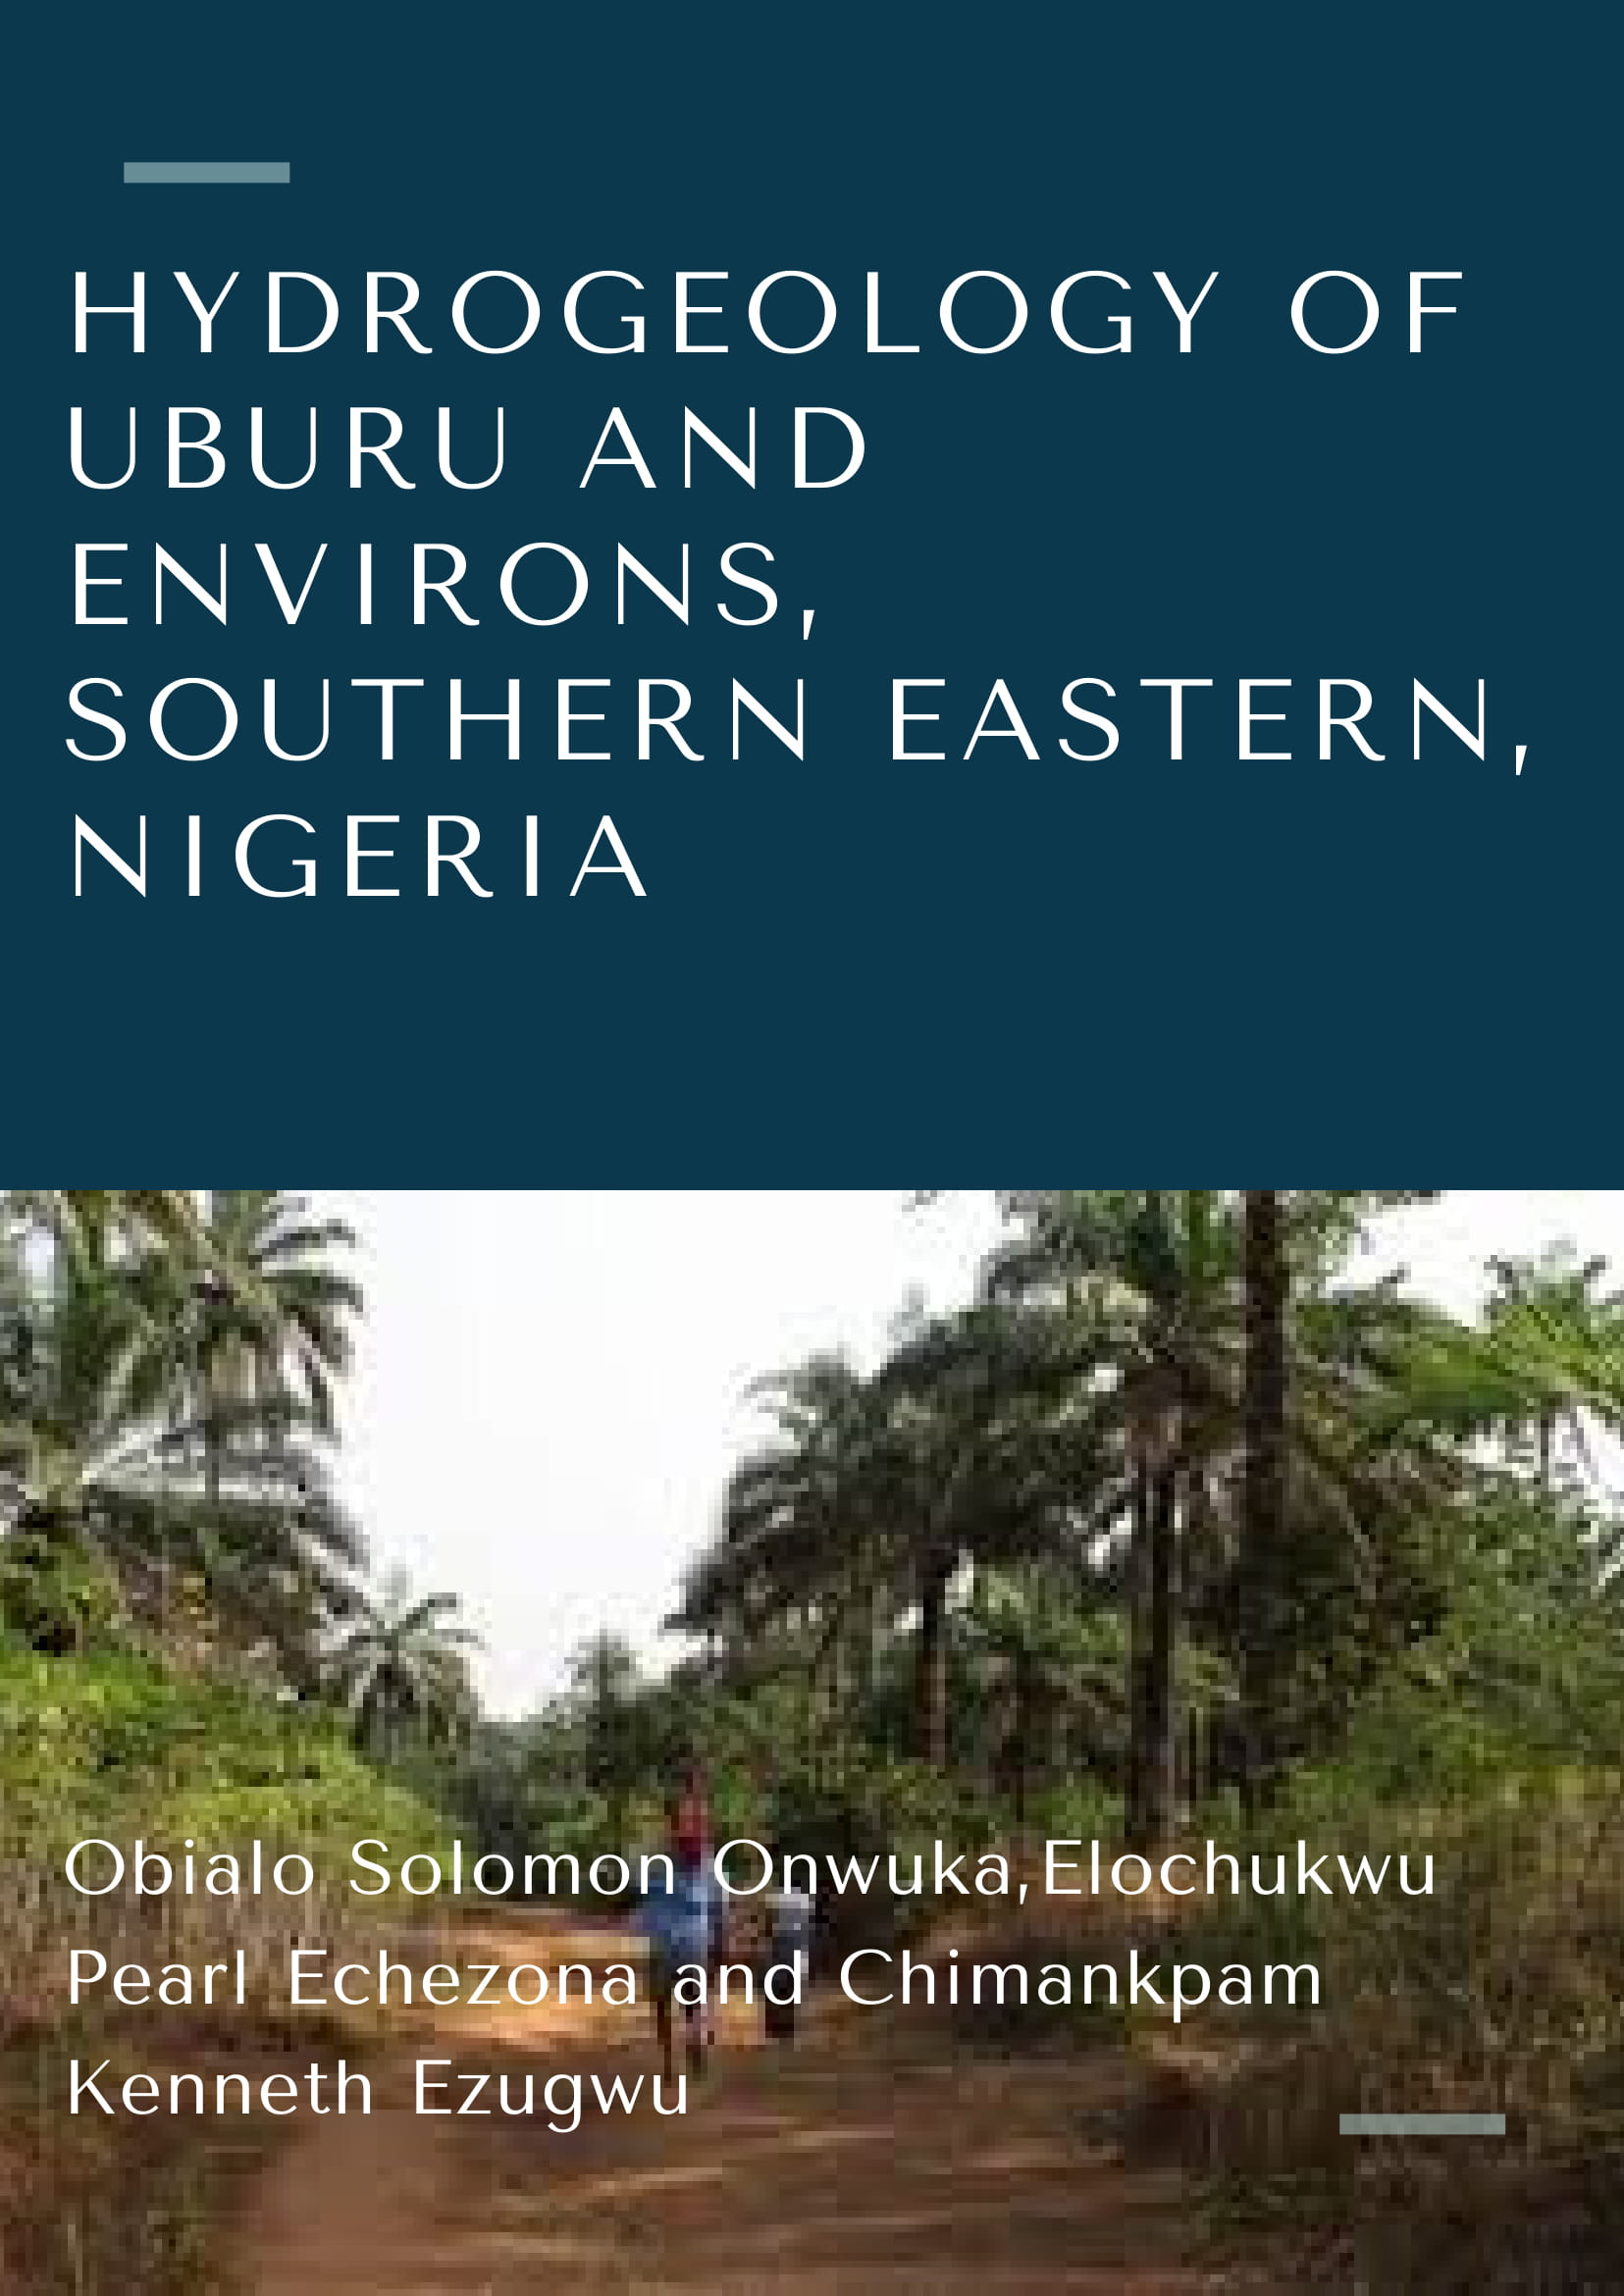 Hydrogeology of Uburu and Environs, Southern Eastern, Nigeria image